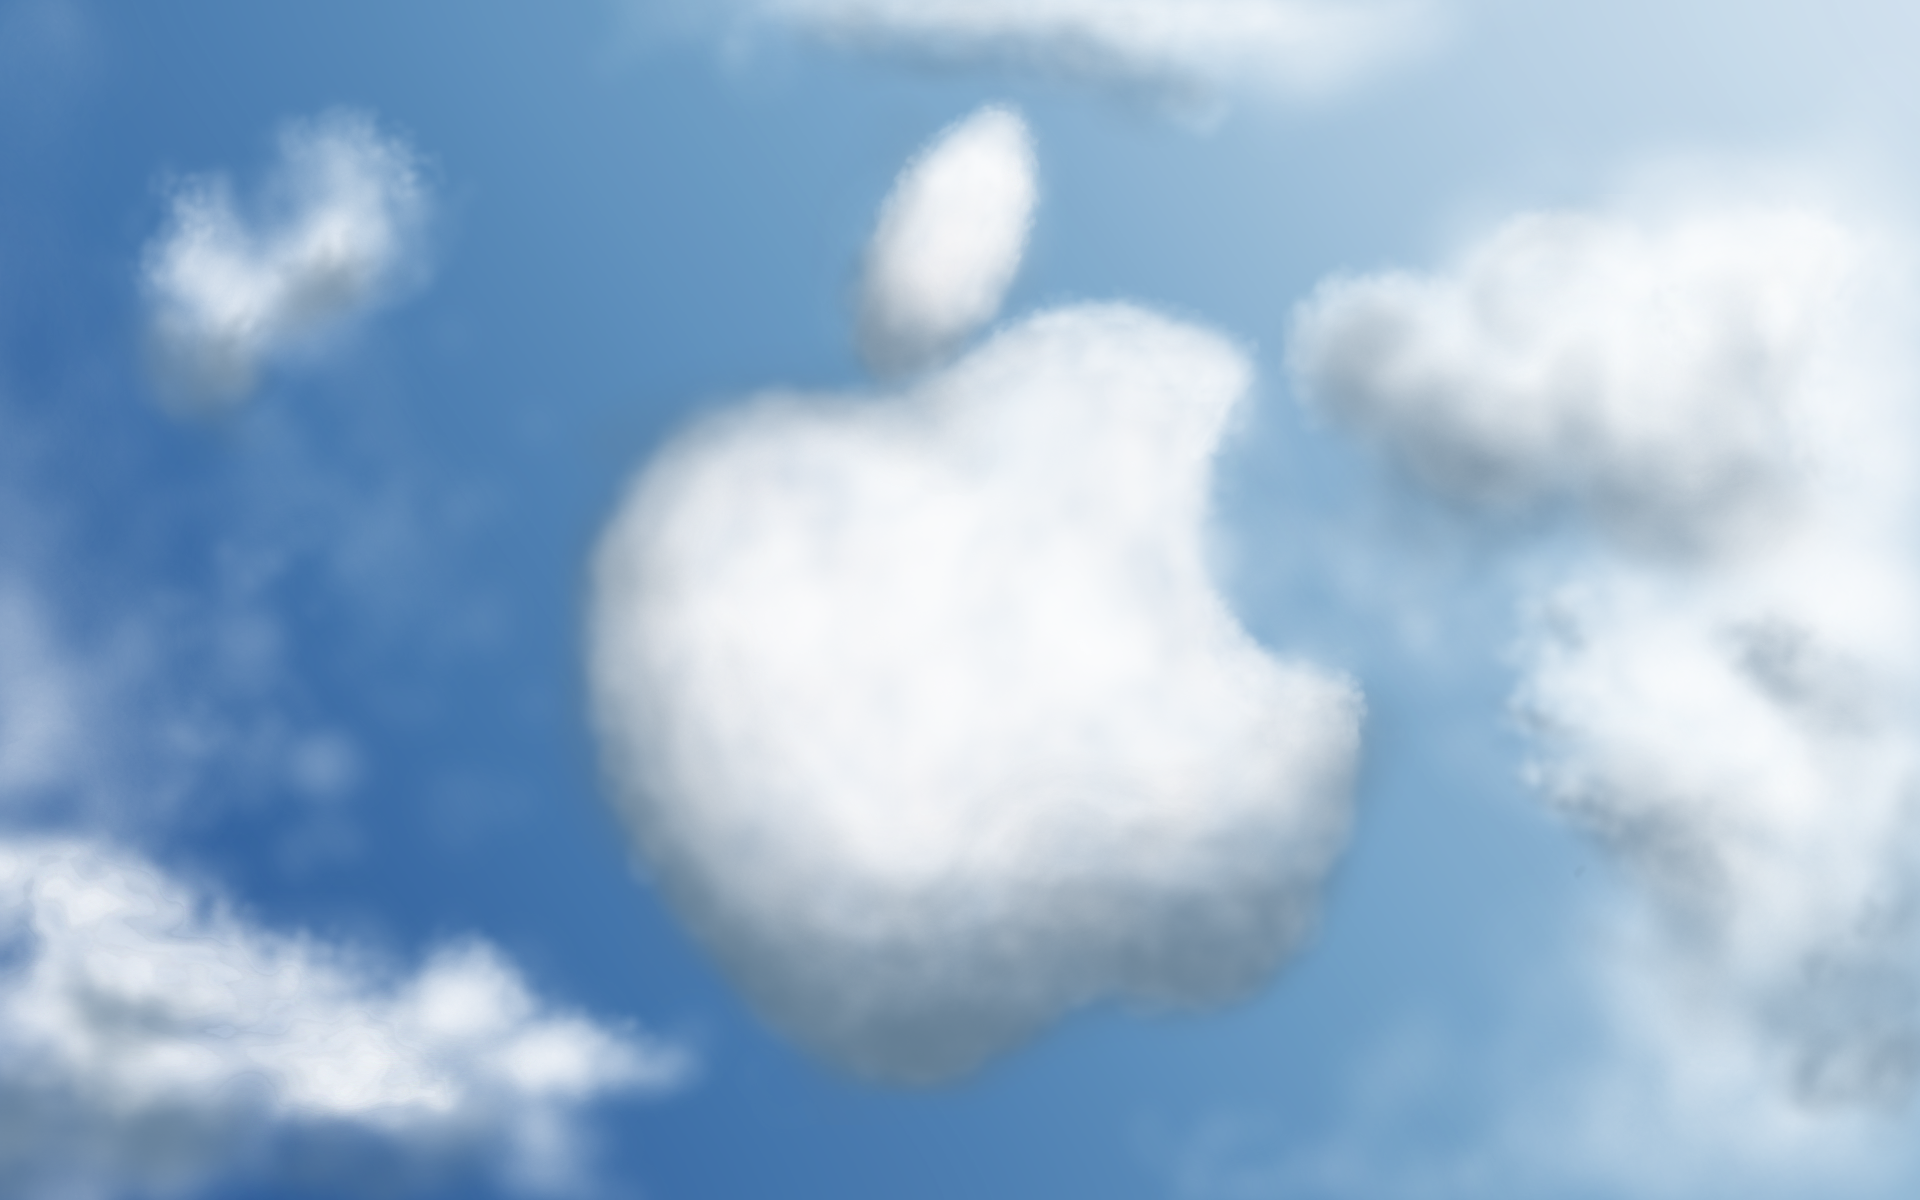 $4.5 million iCloud.com domain name may switch owners soon